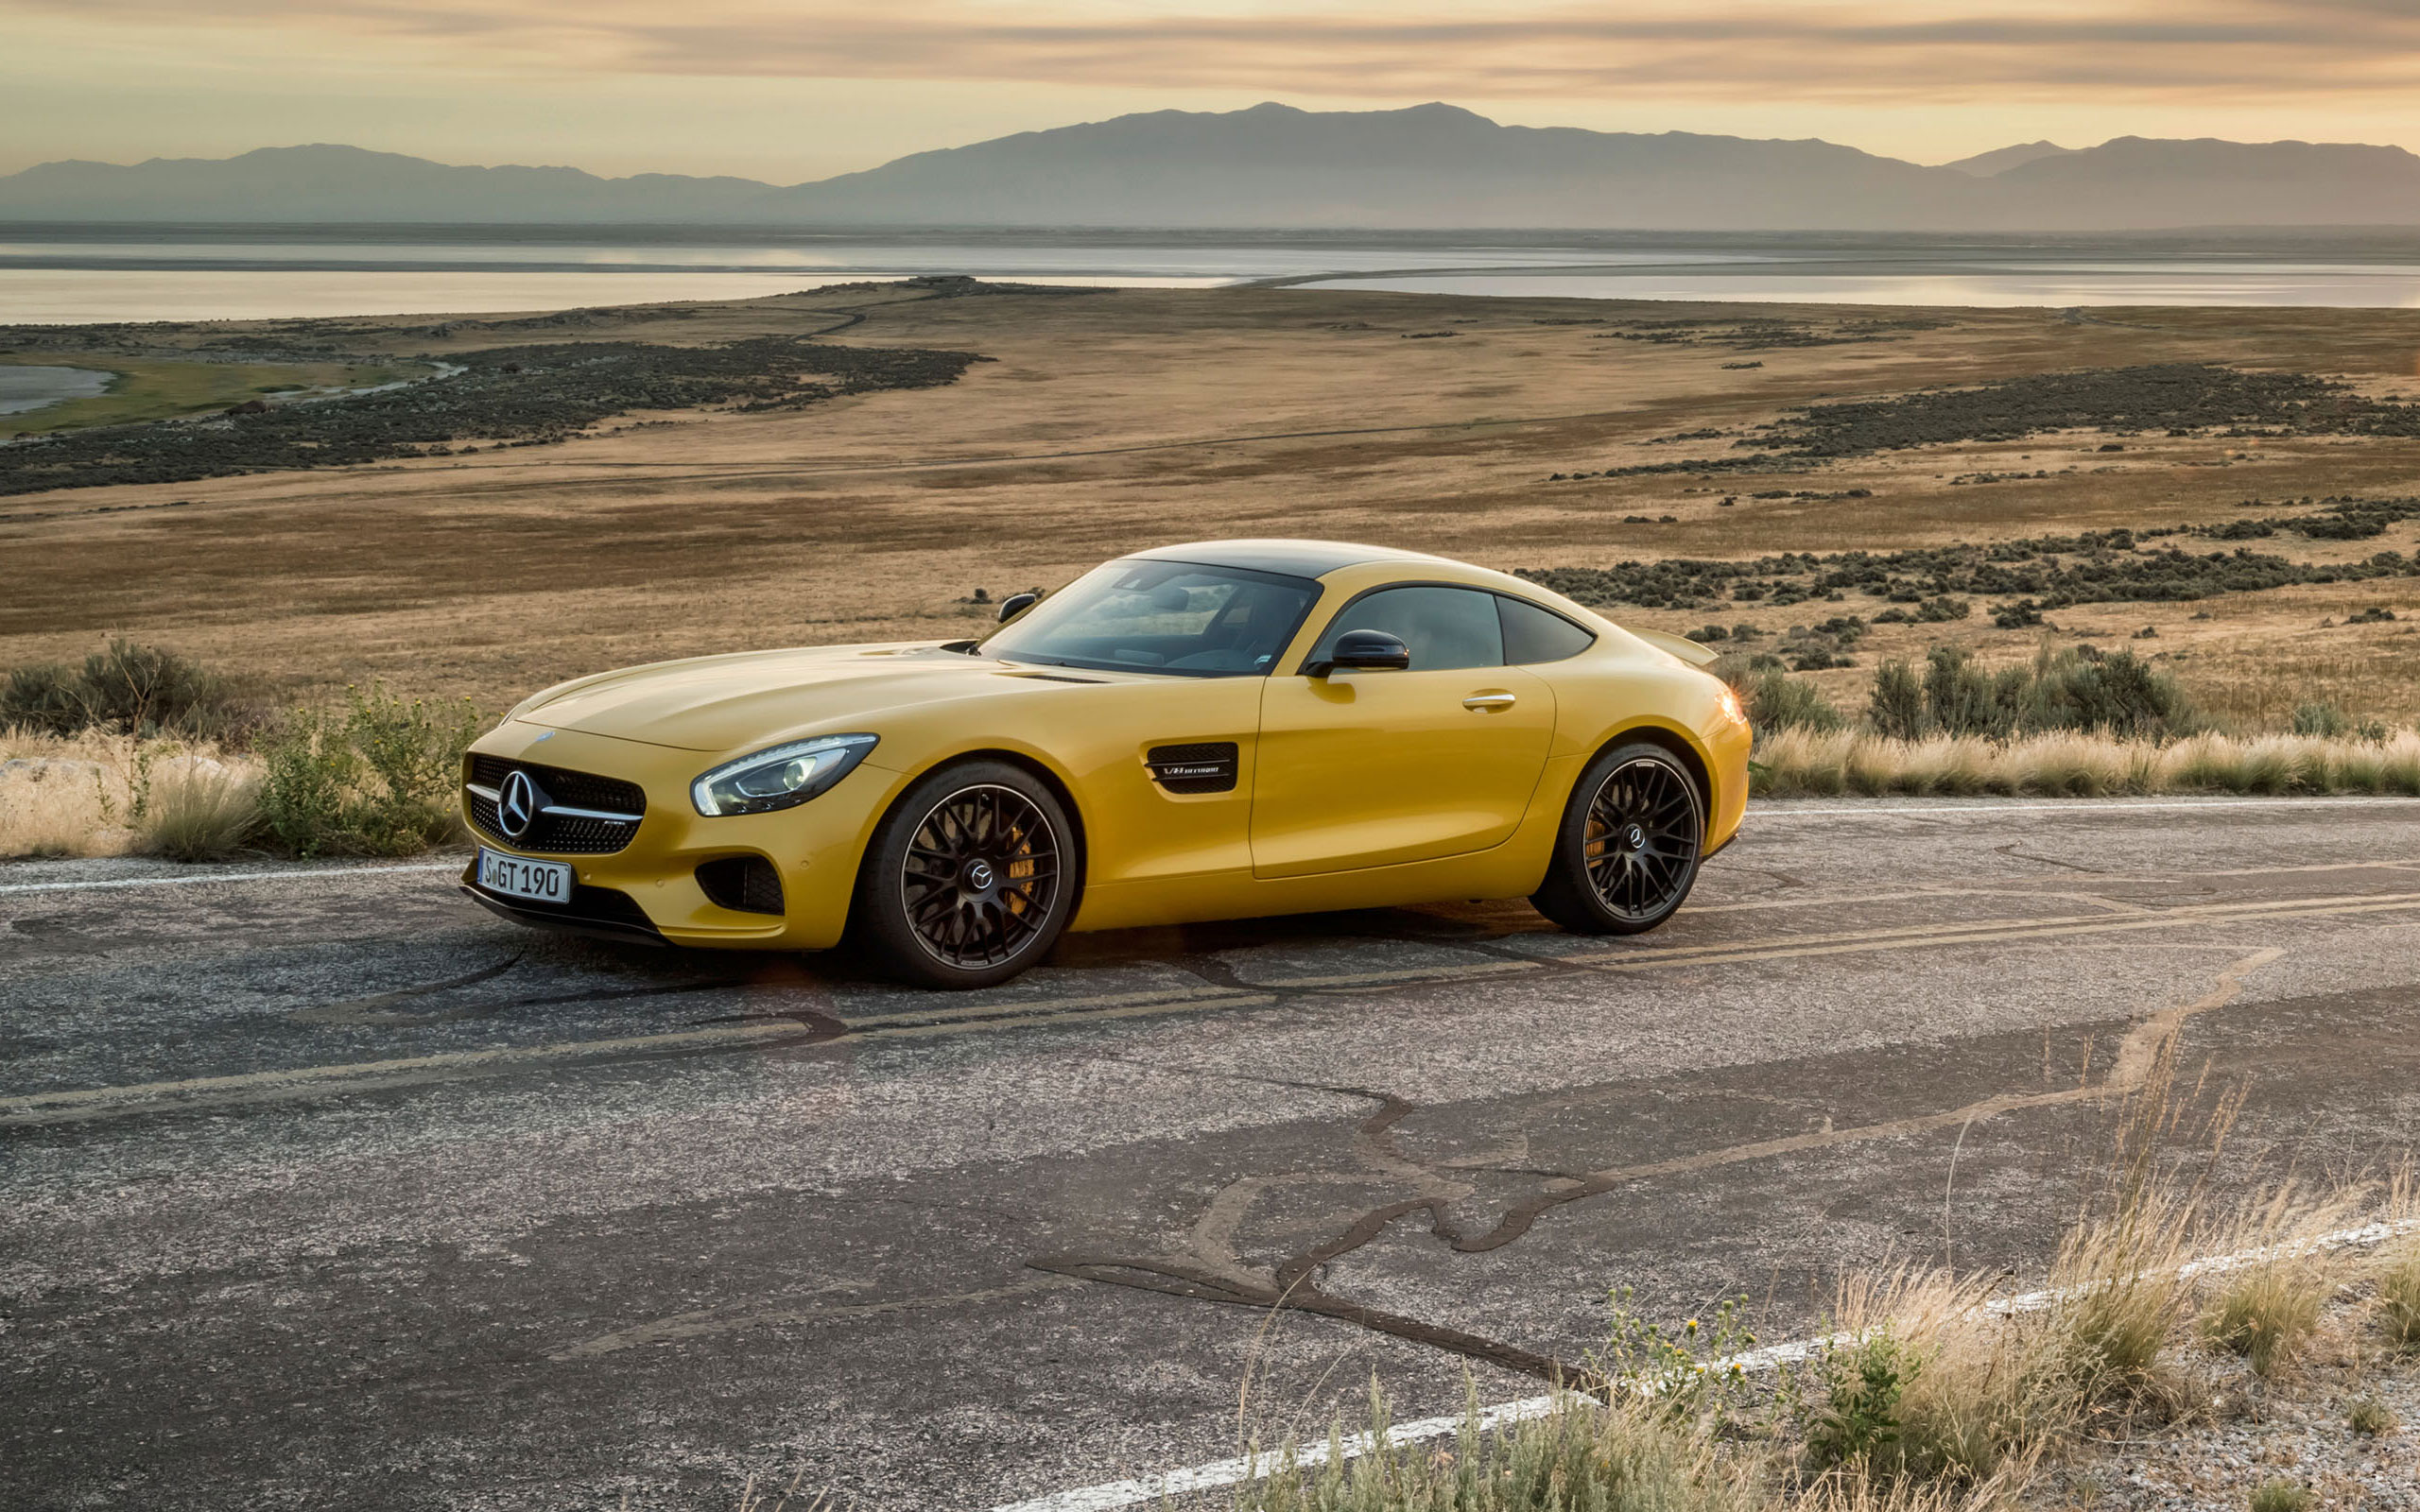 2015-AMG_GT-FUTURE-GALLERY-009-WR-D